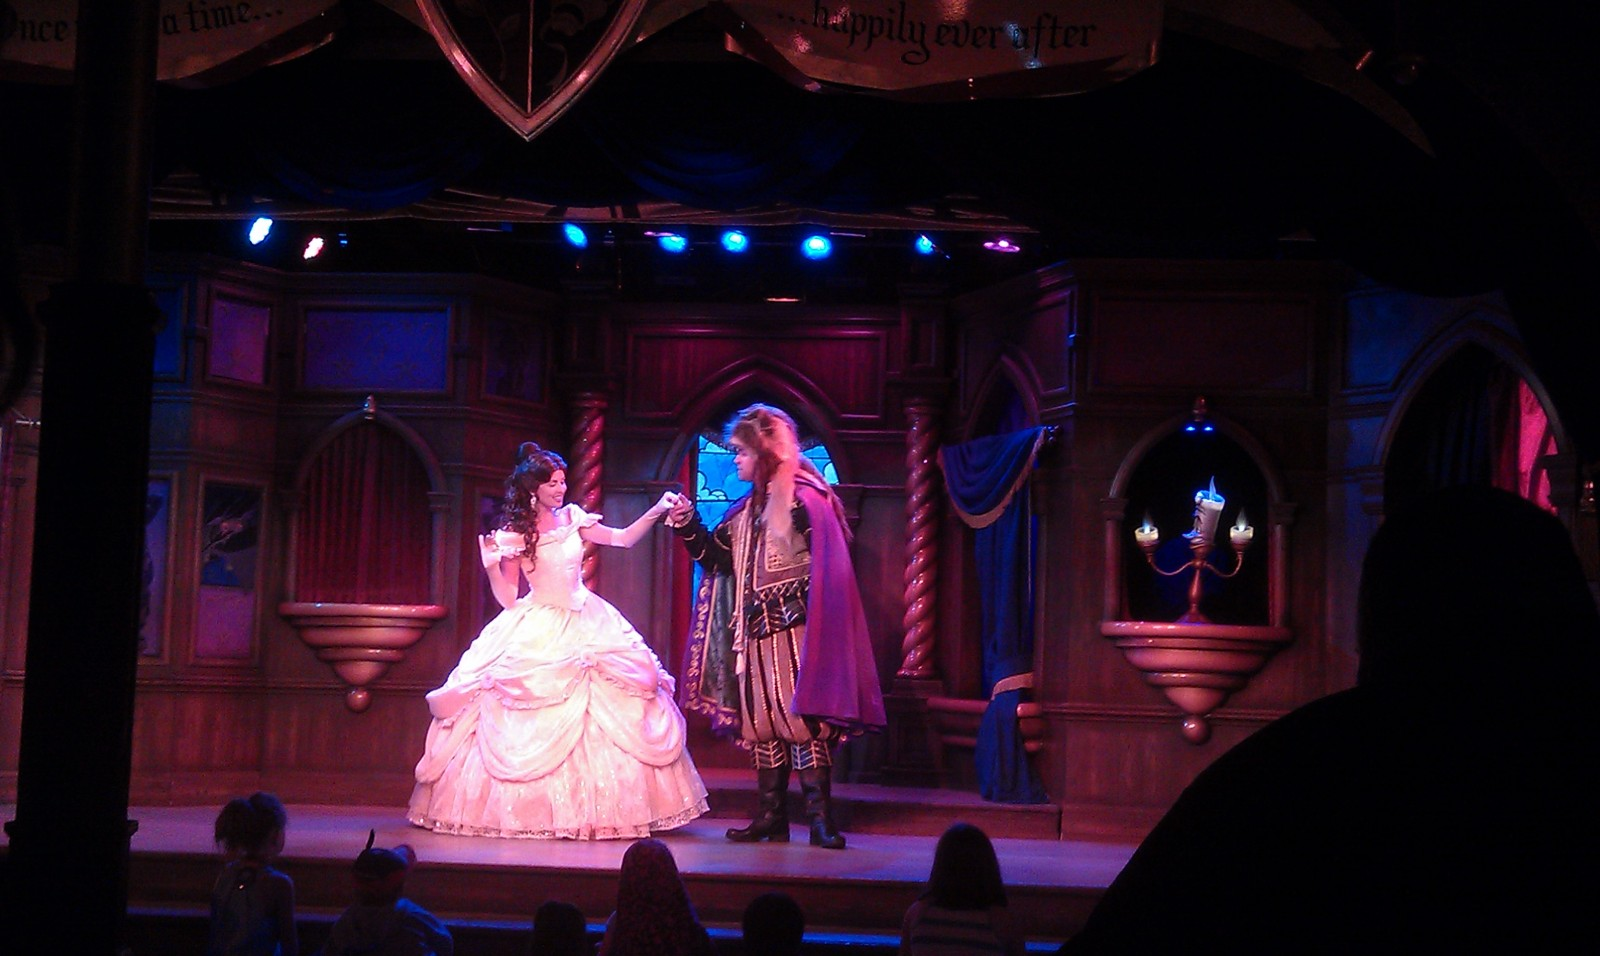 A late night performance of Beauty and the Beast at the Royal Theatre